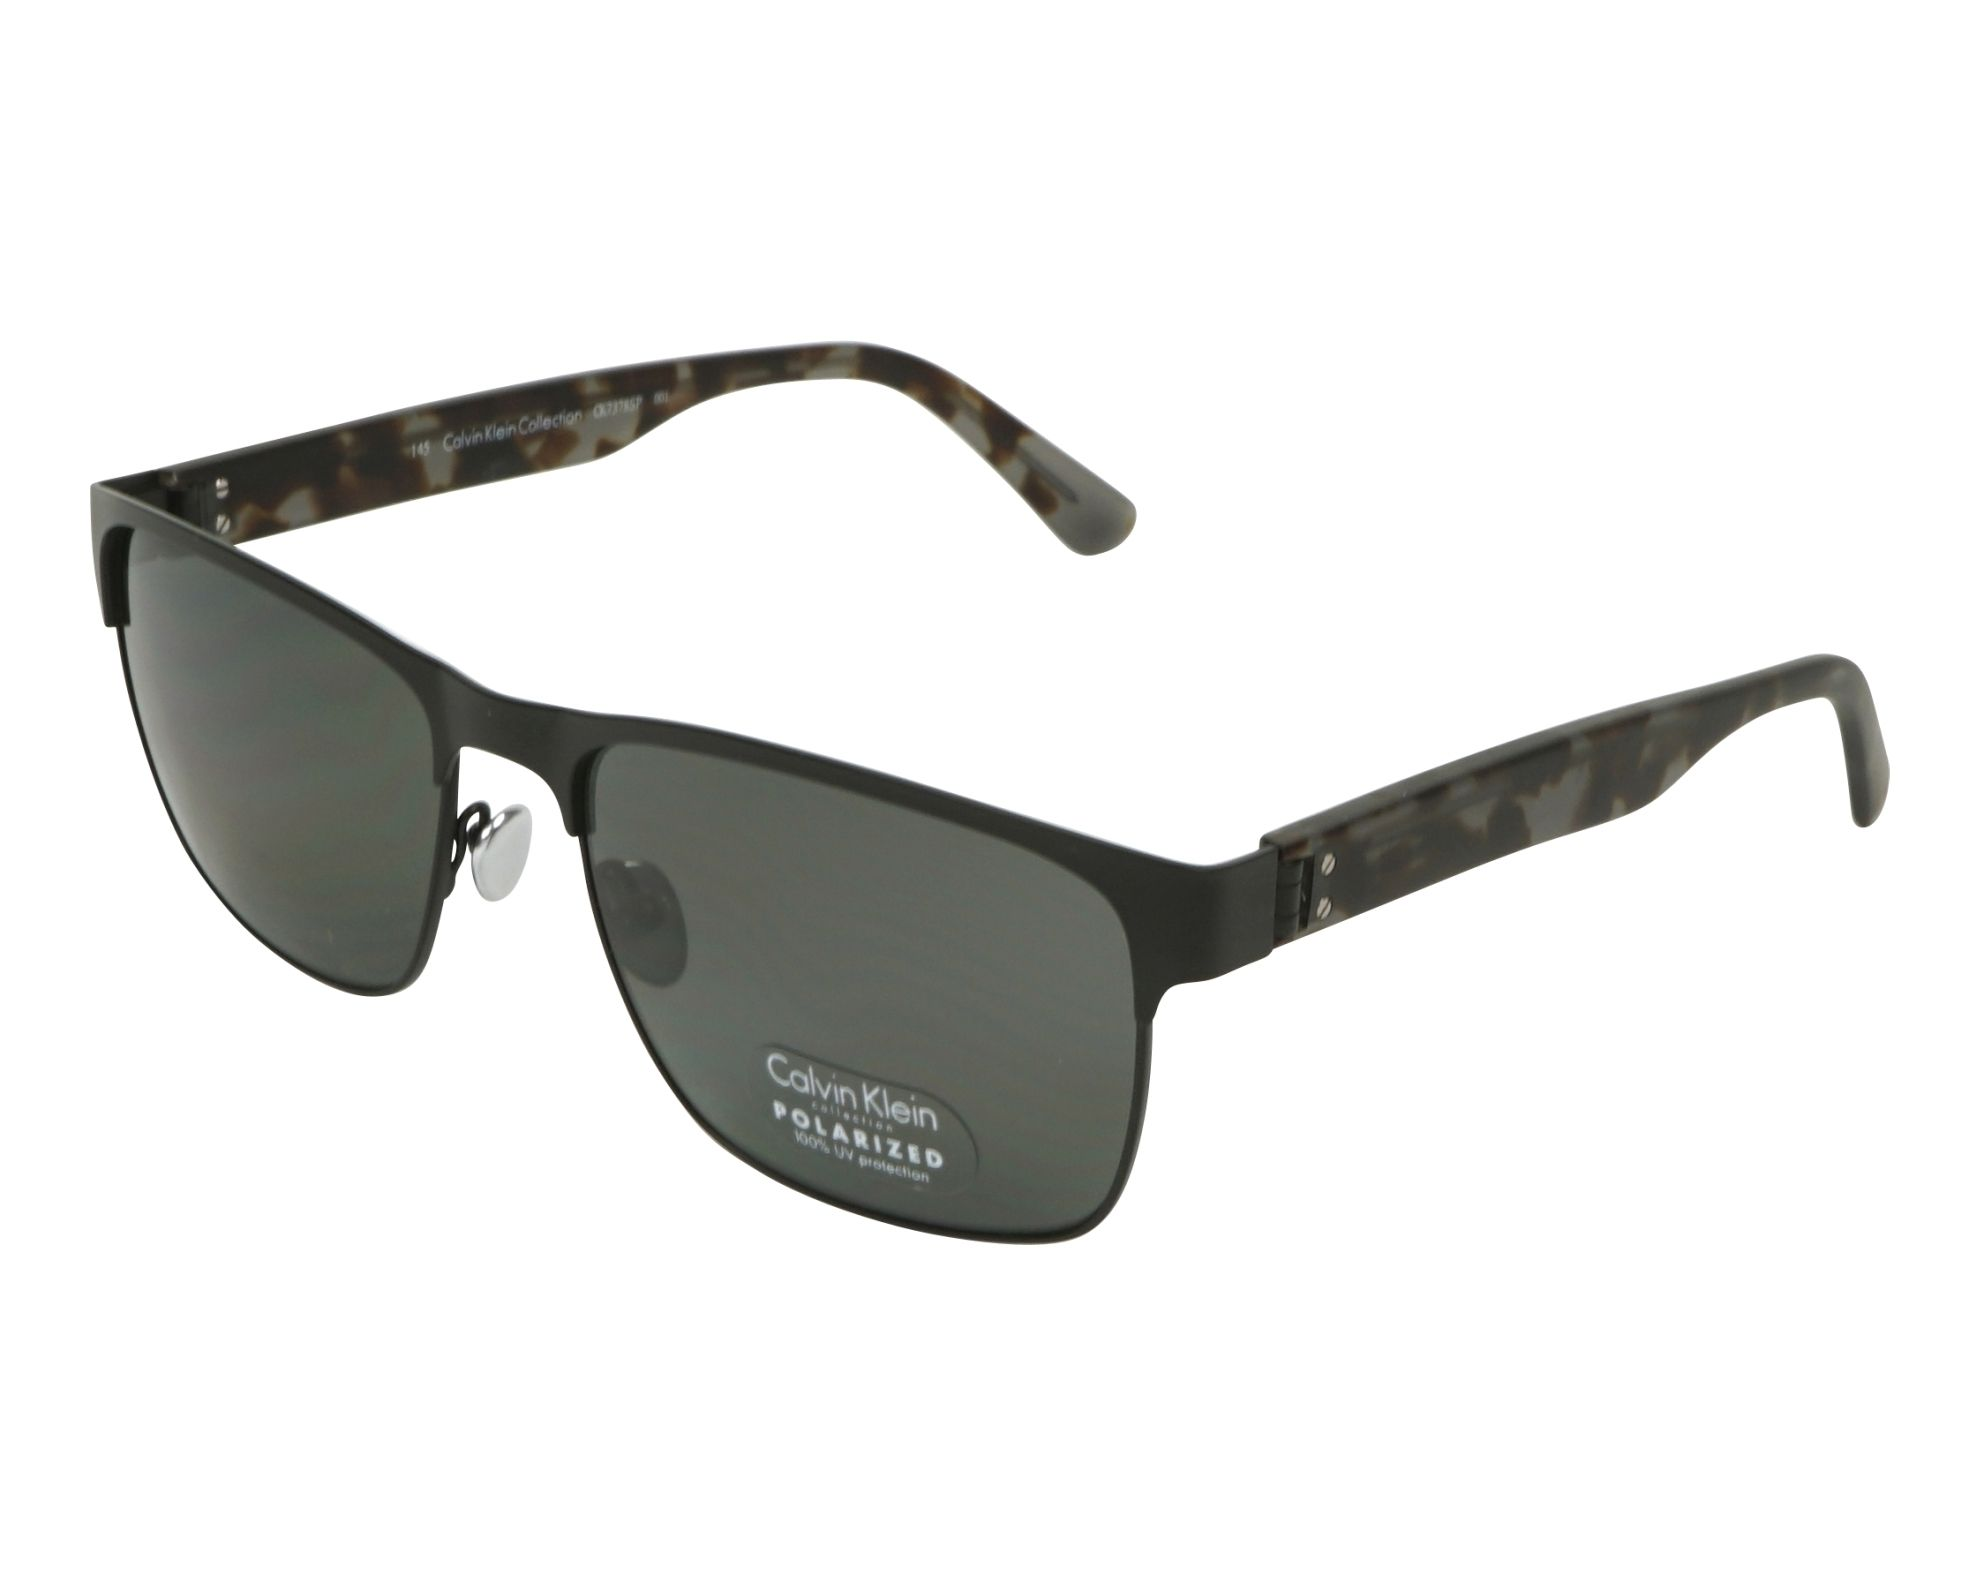 9004b90e41 Polarized. Sunglasses Calvin Klein CK-7378-S-P 001 - Black Brown profile  view